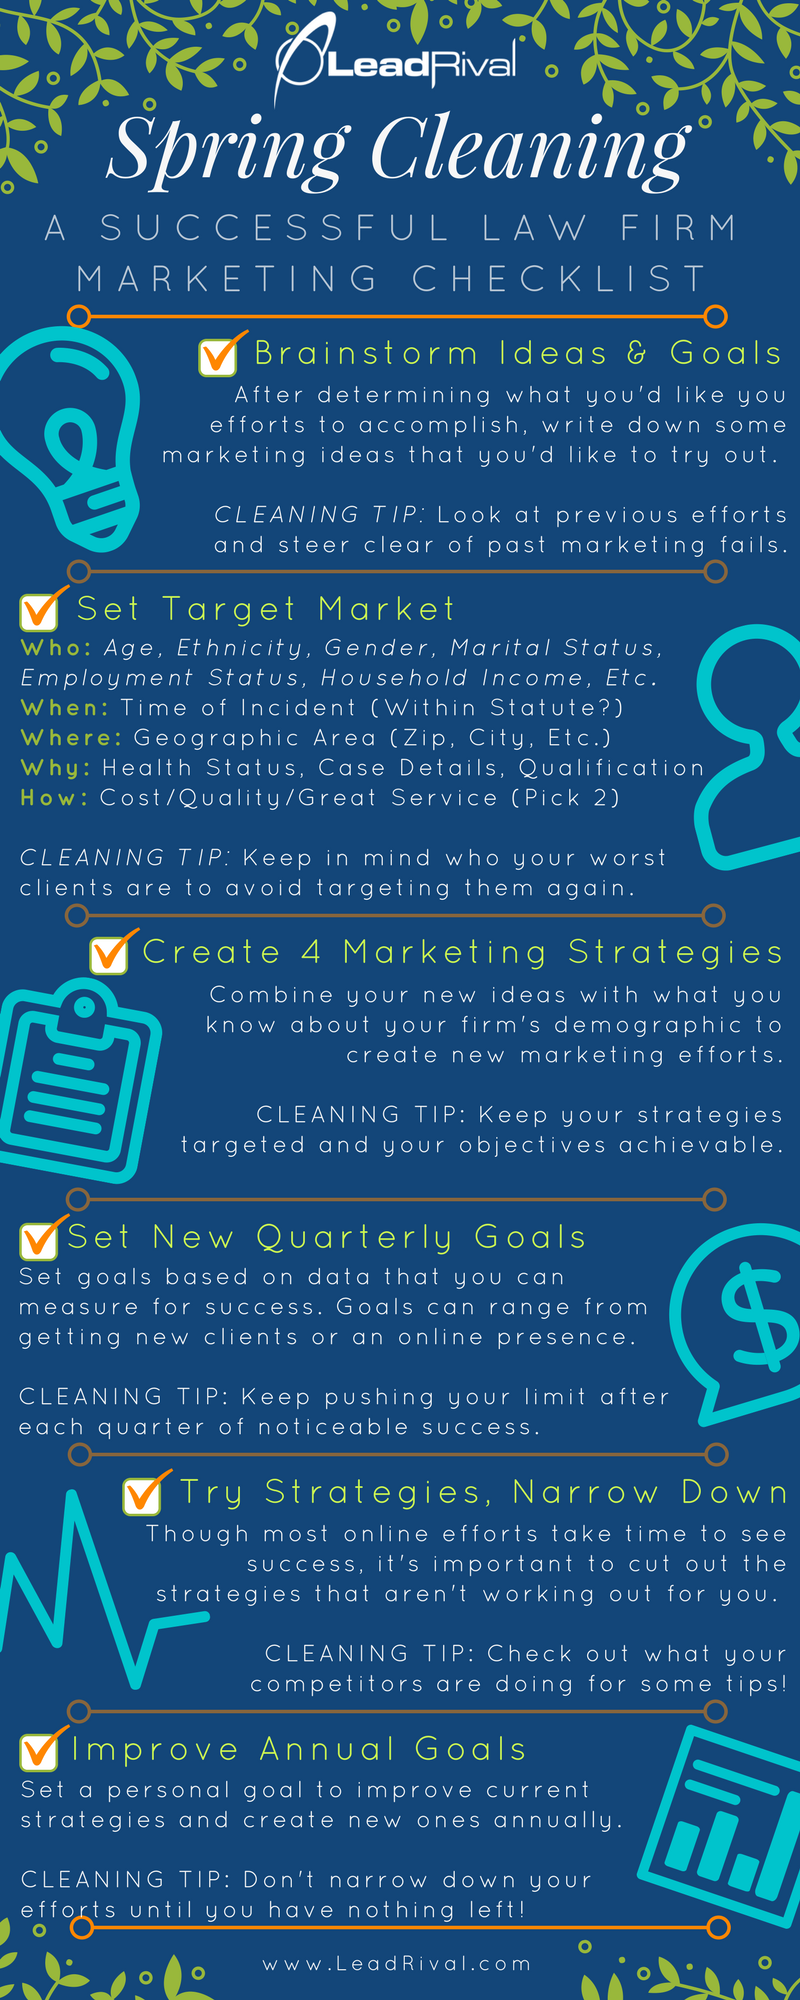 A Successful Law Firm Marketing Checklist